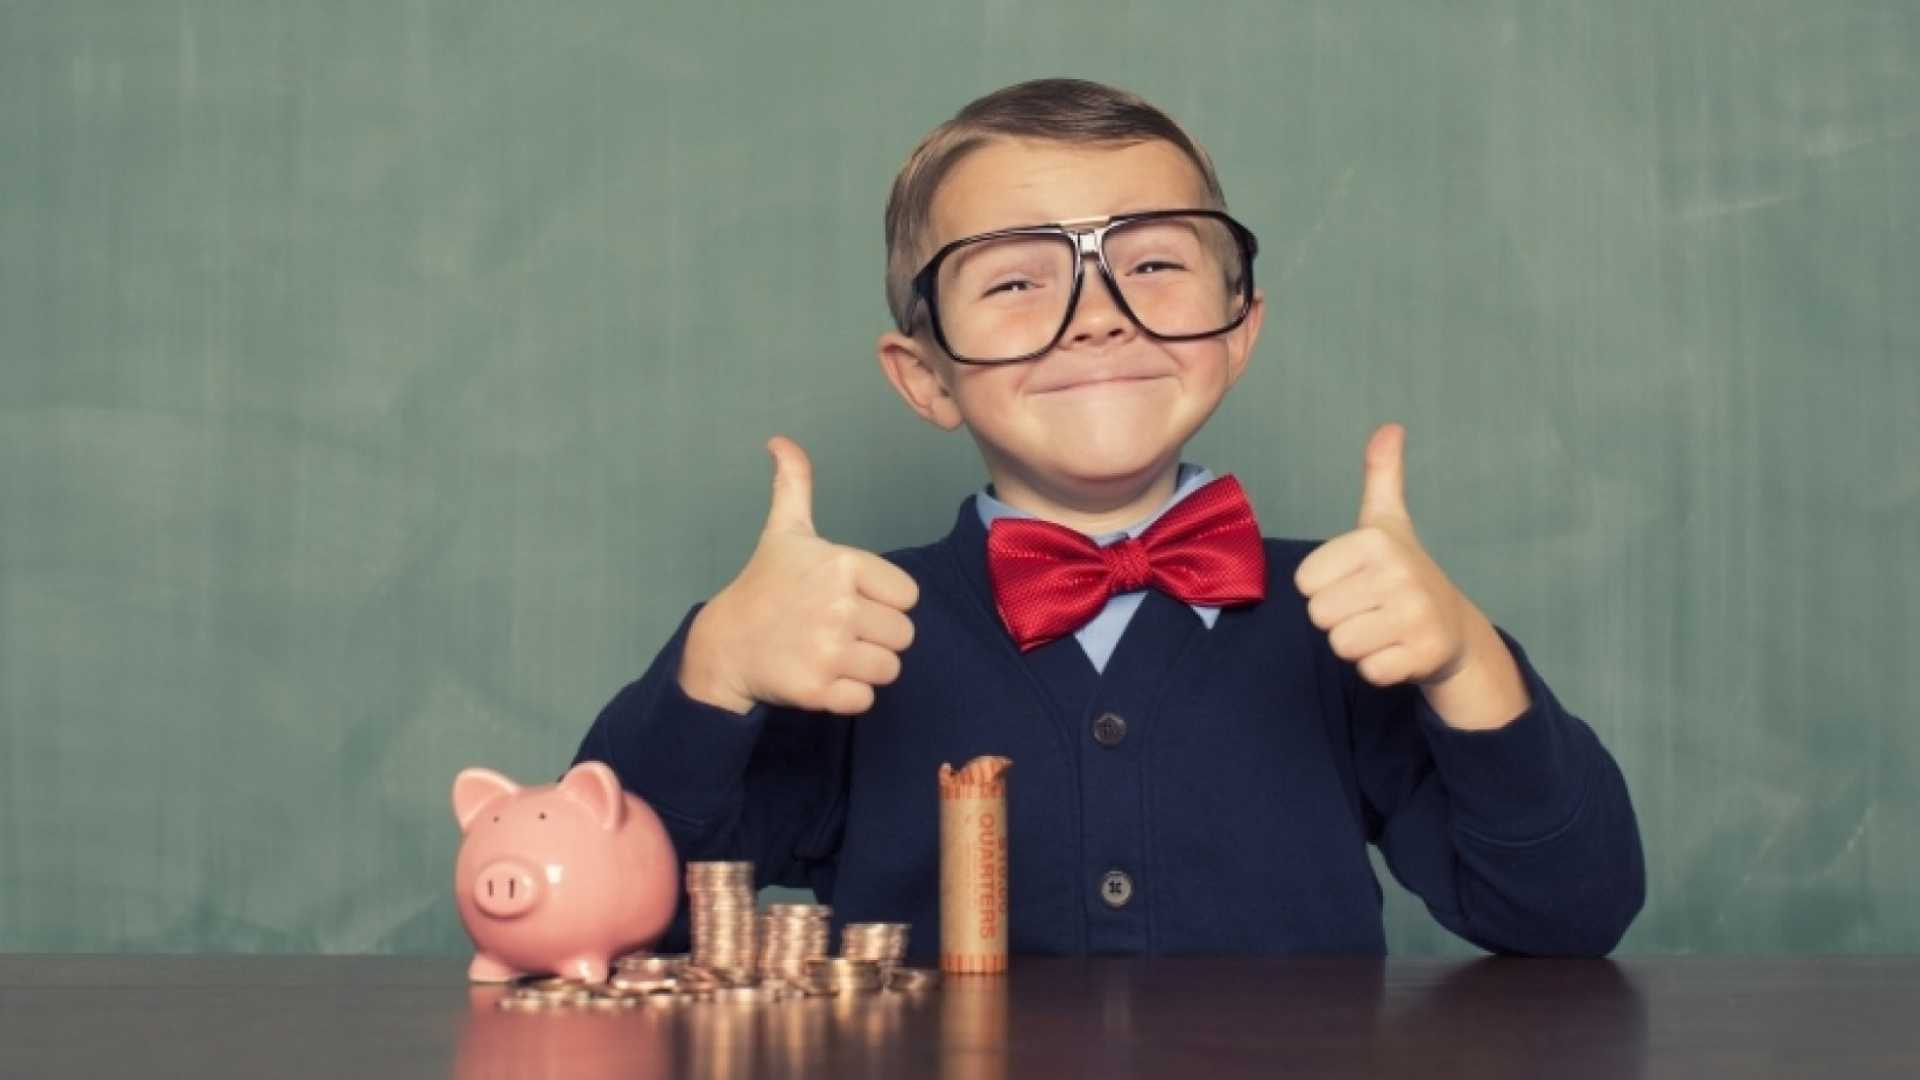 This Is What You Should be Teaching Your Kids About Money, According to a Finance Prof